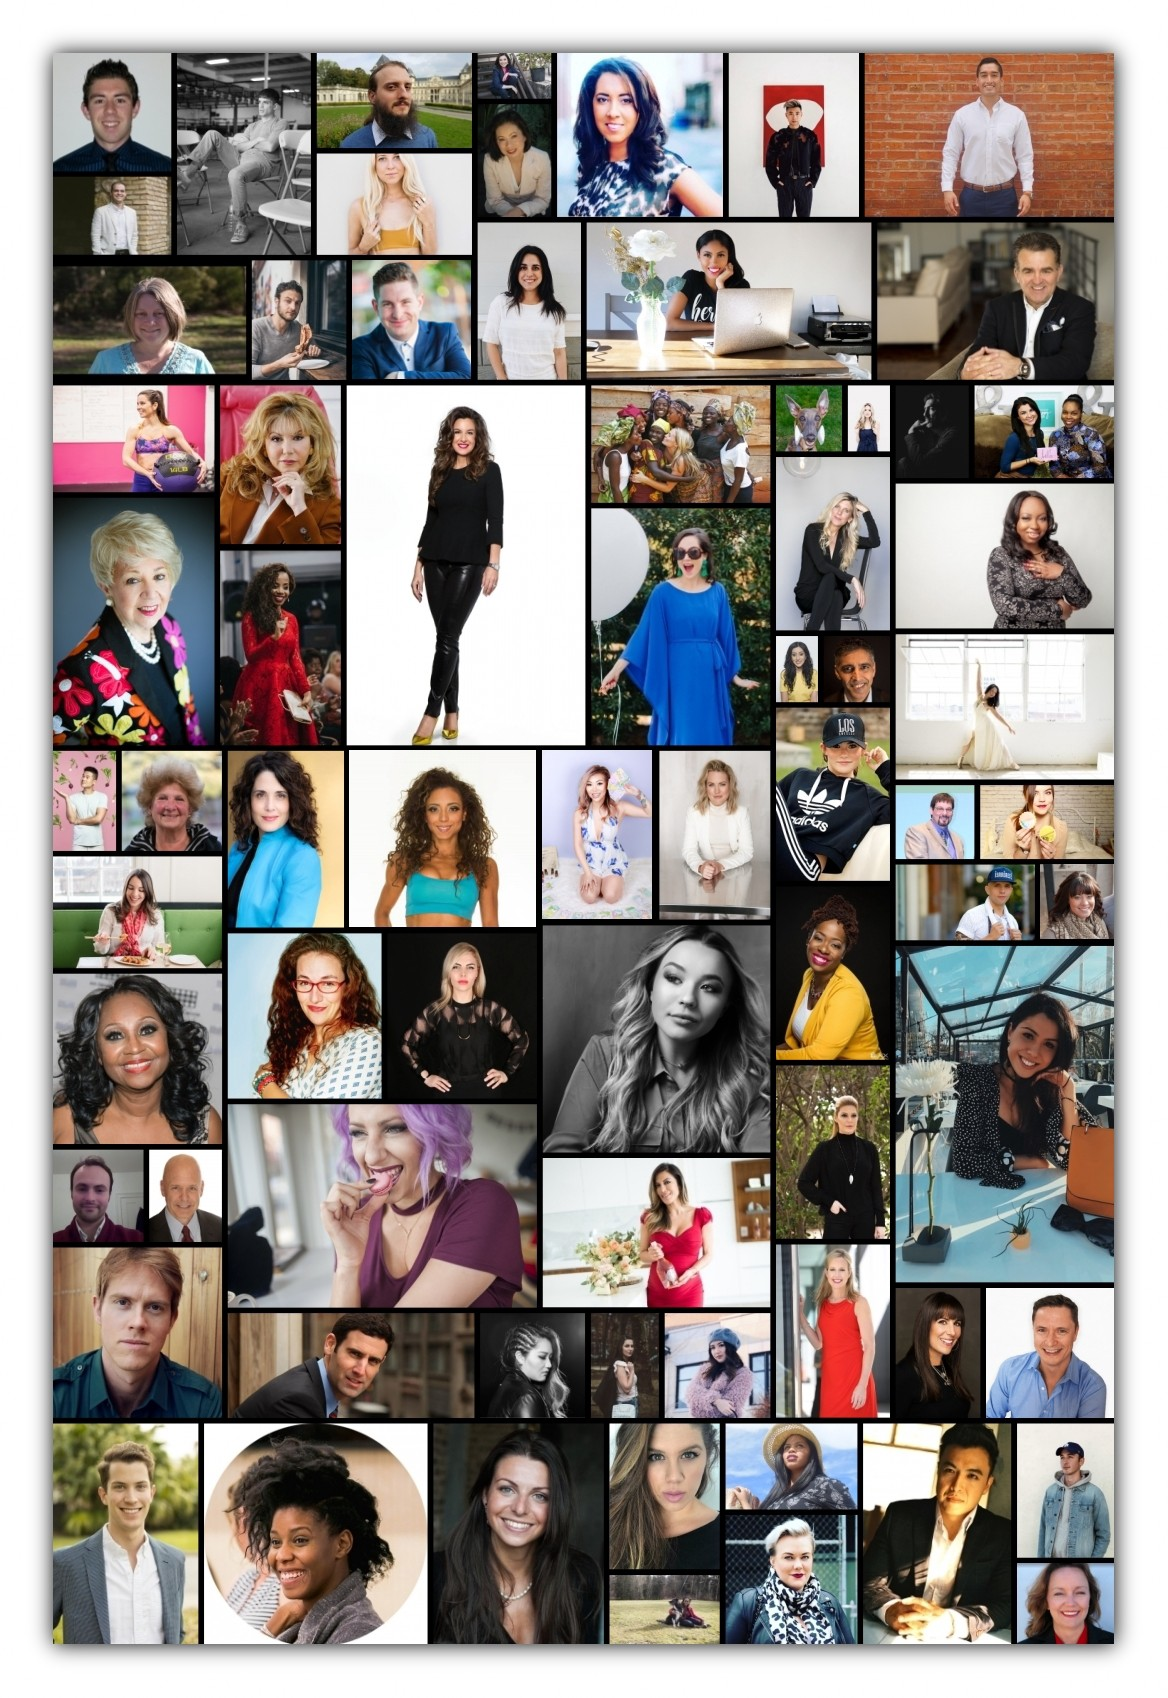 75 Prominent Influencers Share Their Top Advice on How To Become An  Influencer 72f961910d